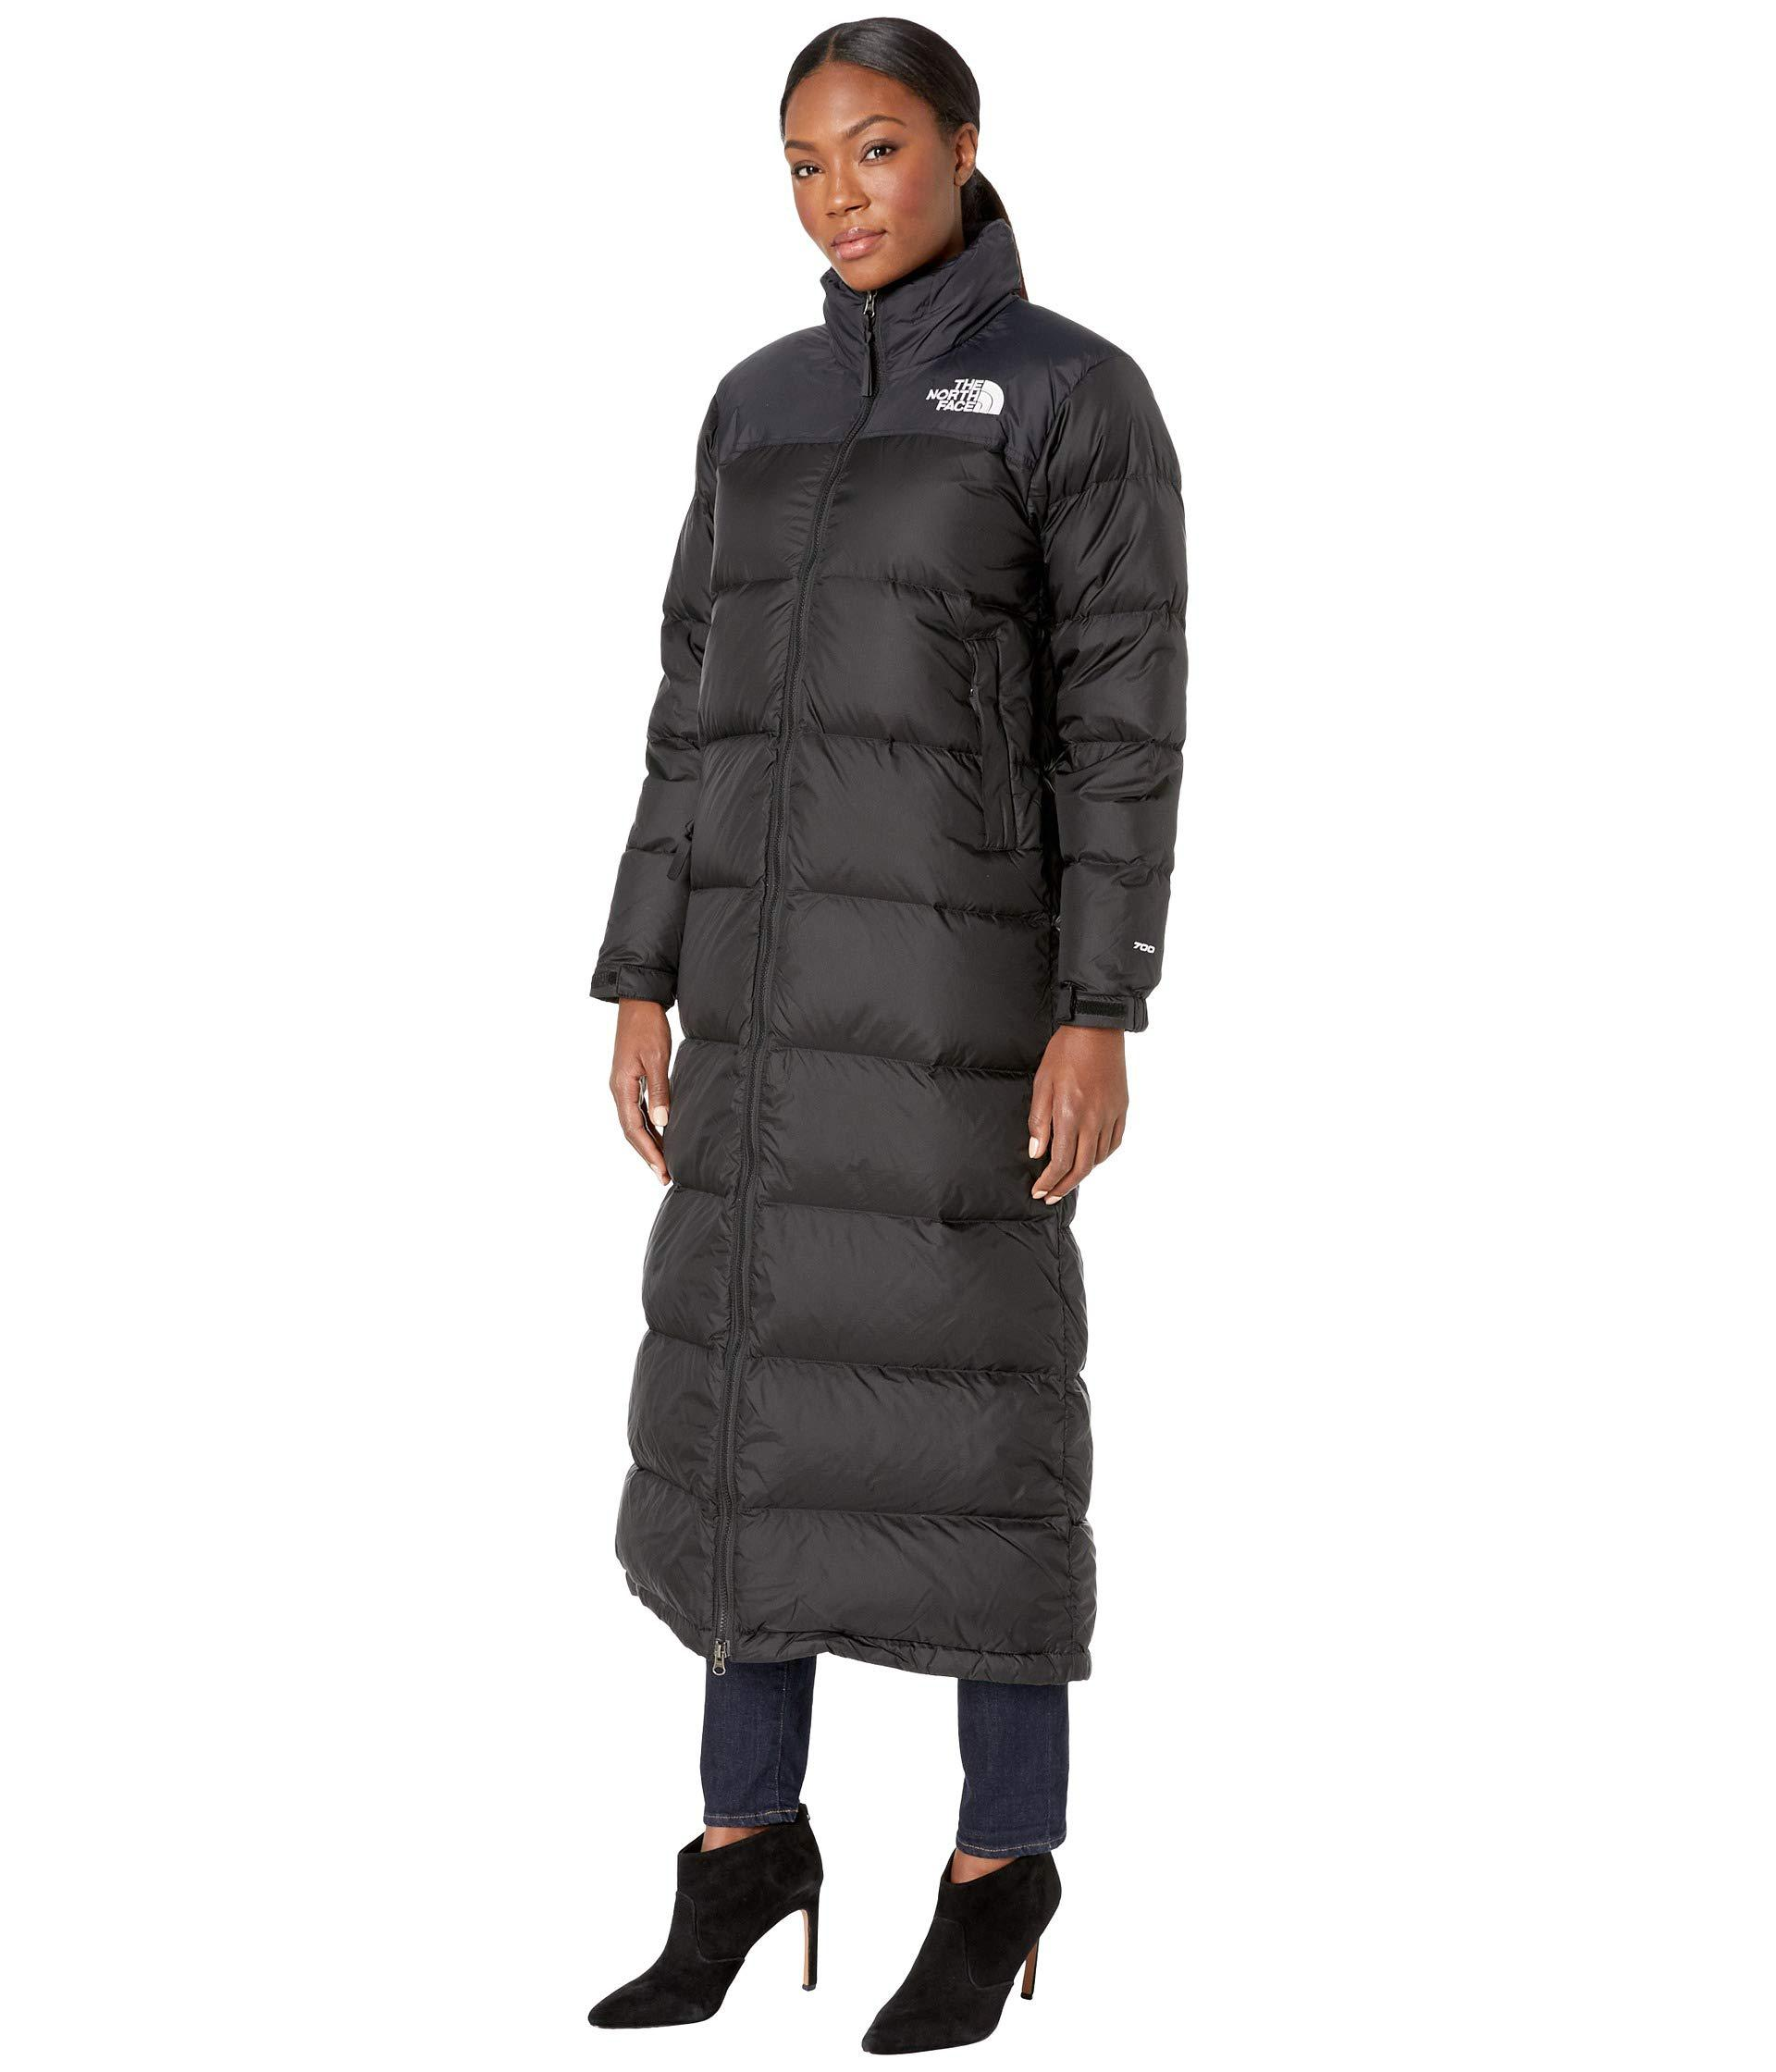 Lyst - The North Face Nuptse Duster (tnf Black) Women s Coat in Black -  Save 6% ba9ab518f